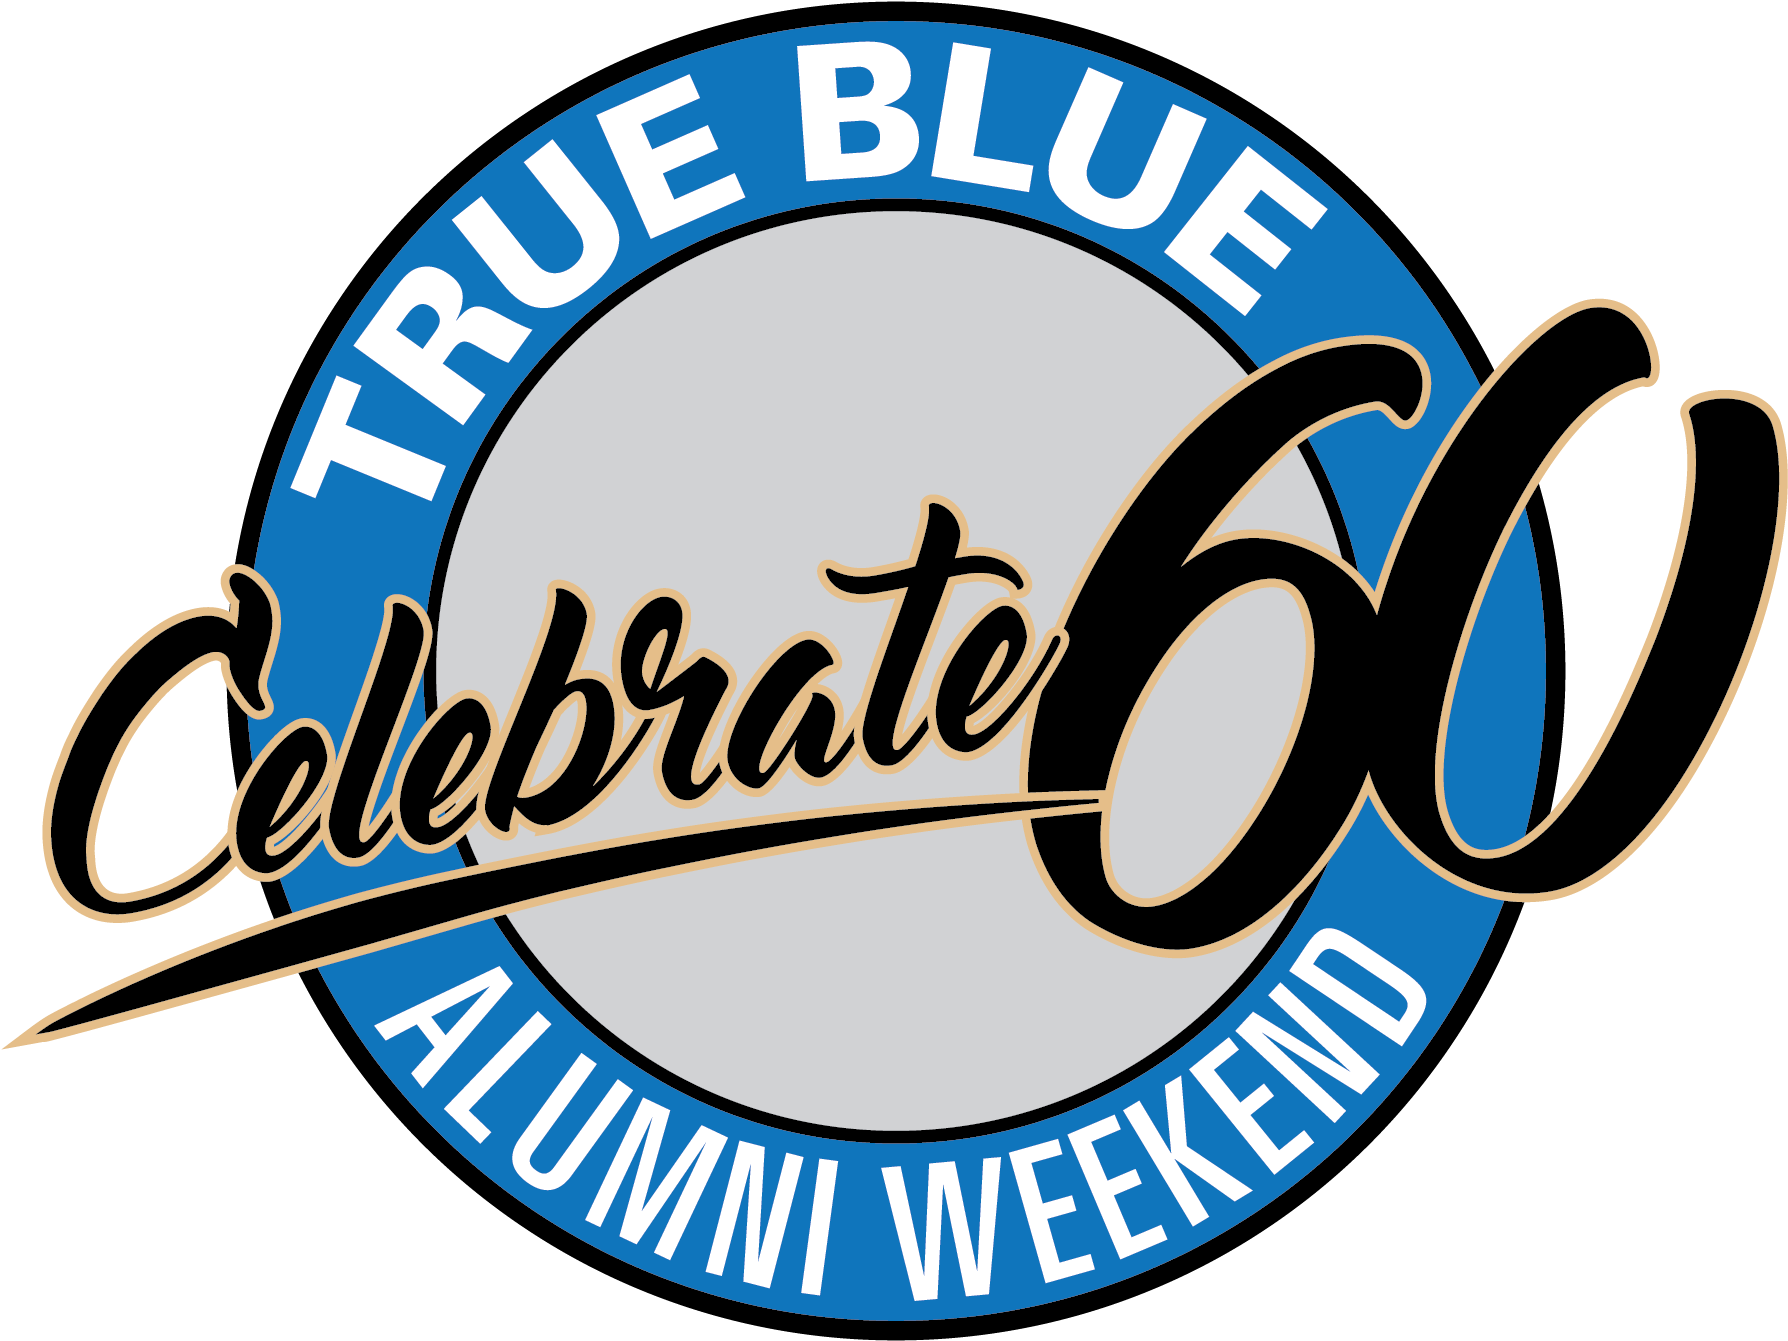 What happen in 1957 clipart image transparent stock True Blue Weekend - 1957 To 2017 Clipart - Full Size Clipart ... image transparent stock